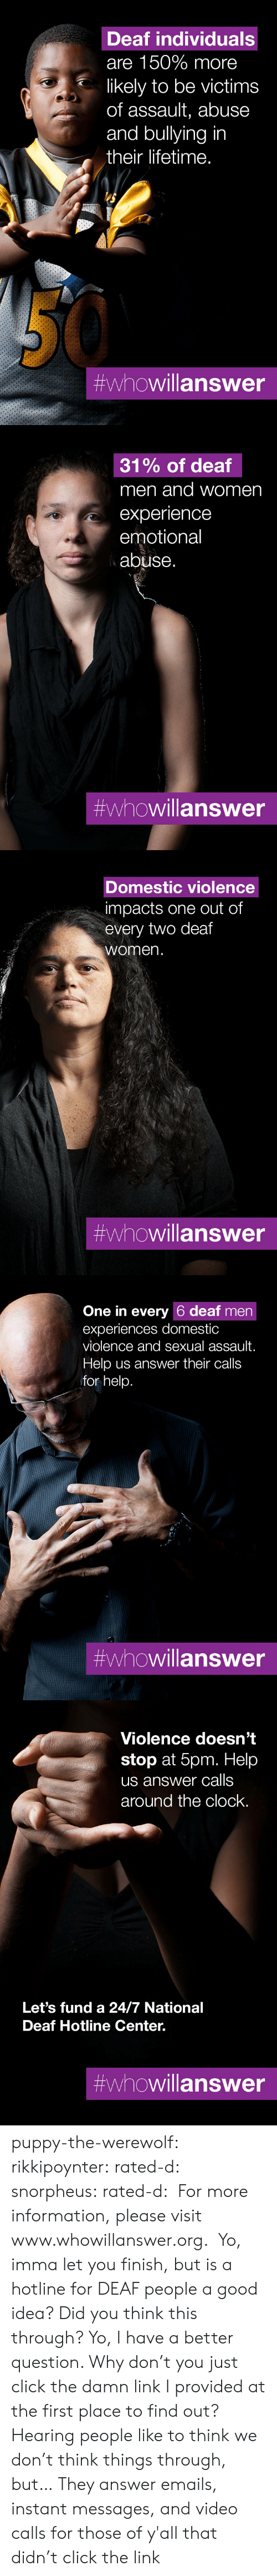 Domestic: Deaf individuals  are 150% more  likely to be victims  of assault, abuse  and bullying in  their lifetime.  #whowillanswer   31% of deaf  men and women  experience  emotional  abuse.  #whowillanswer   Domestic violence  impacts one out of  every two deaf  women.  #whowillanswer   One in every 6 deaf men  experiences domestic  violence and sexual assault.  Help us answer their calls  for help.  #whowillanswer   Violence doesn't  stop at 5pm. Help  us answer calls  around the clock.  Let's fund a 24/7 National  Deaf Hotline Center.  puppy-the-werewolf: rikkipoynter:  rated-d:  snorpheus:  rated-d:   For more information, please visit www.whowillanswer.org.   Yo, imma let you finish, but is a hotline for DEAF people a good idea? Did you think this through?  Yo, I have a better question. Why don't you just click the damn link I provided at the first place to find out?     Hearing people like to think we don't think things through, but…   They answer emails, instant messages, and video calls for those of y'all that didn't click the link